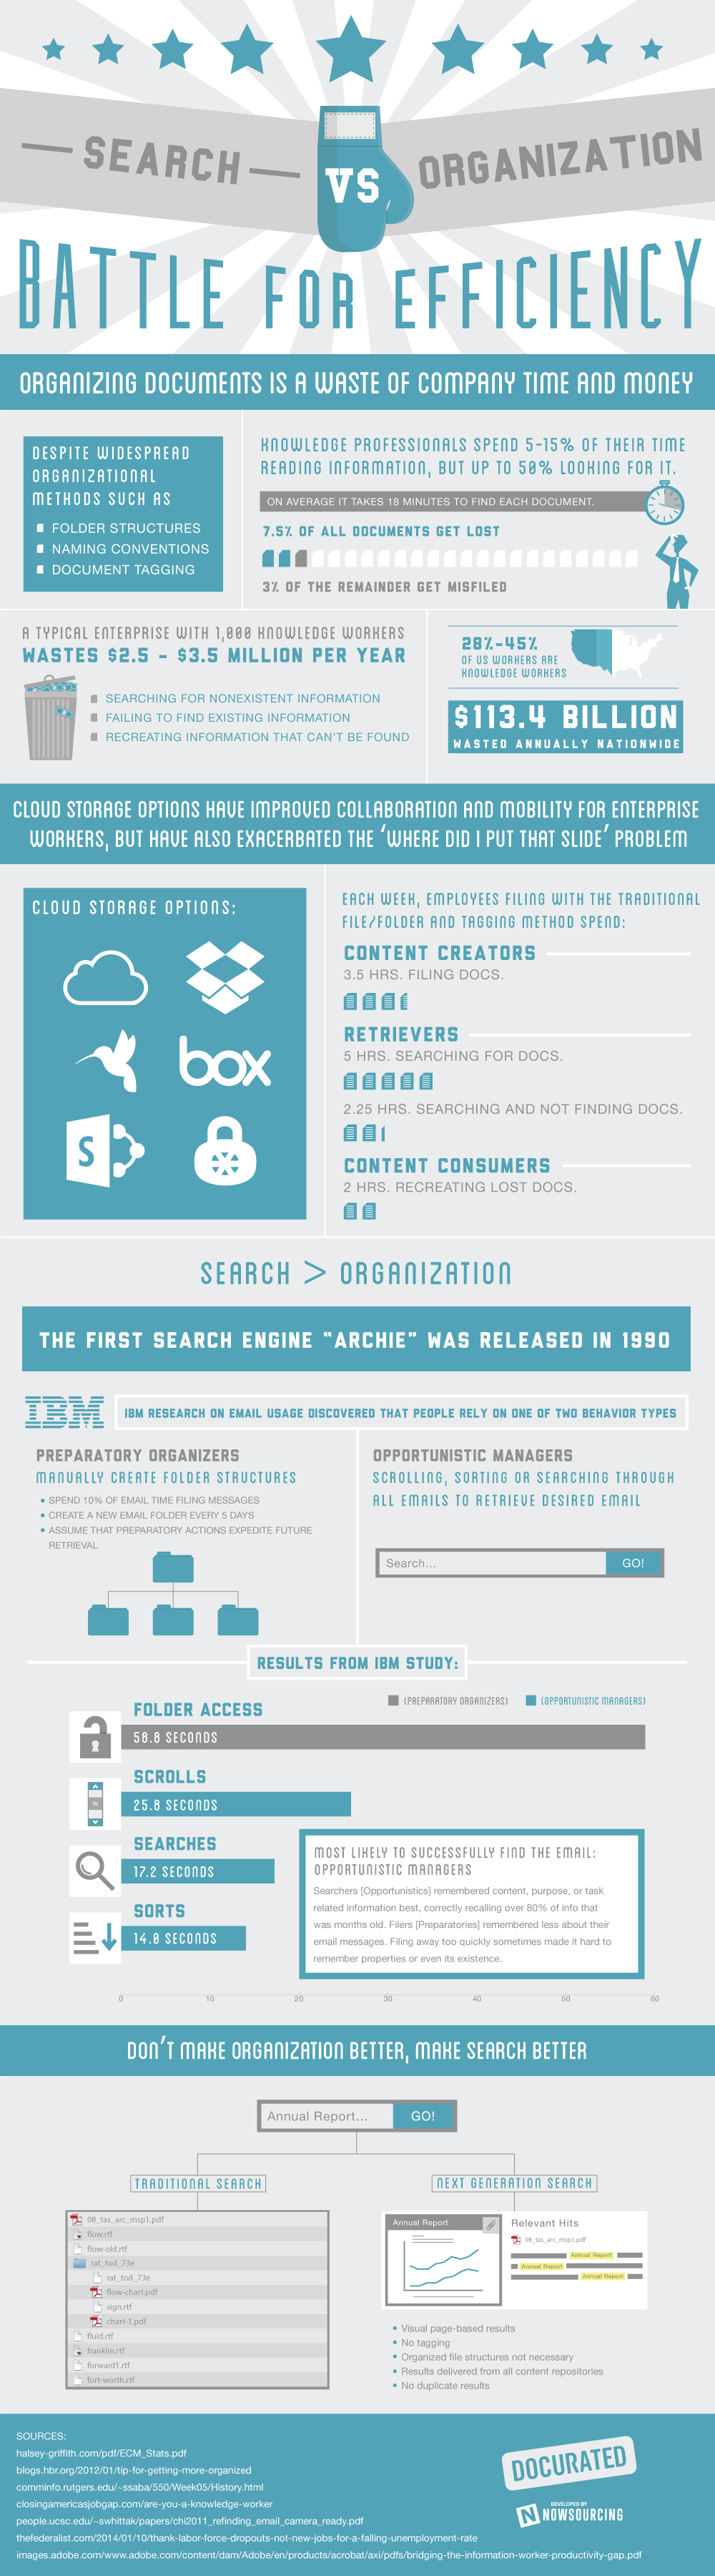 Search Organization Battle Efficiency Infographic